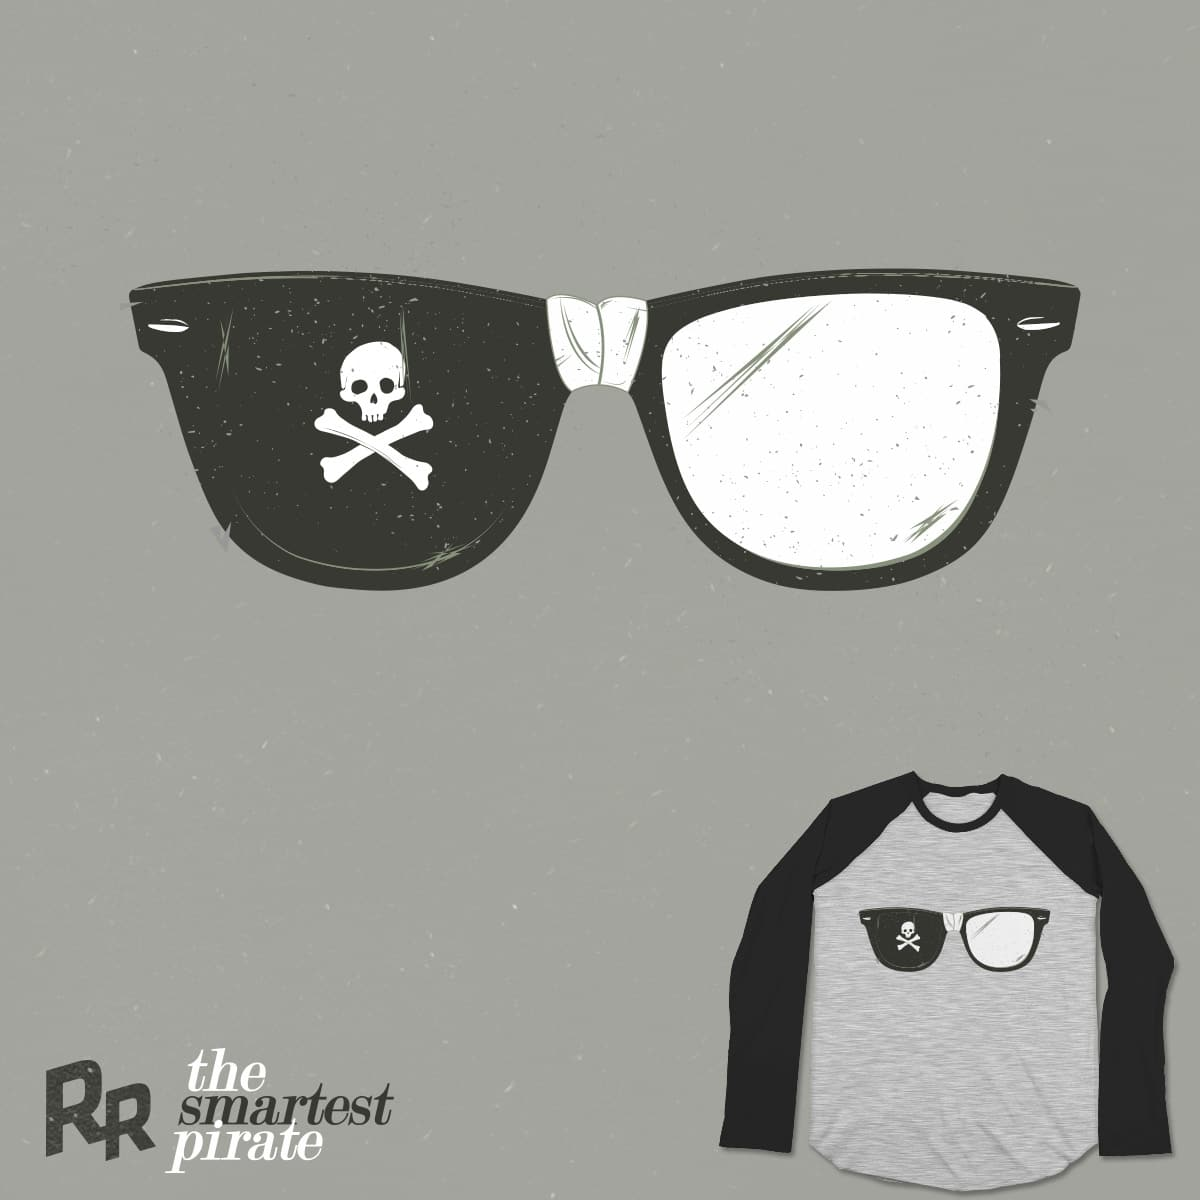 the smartest pirate by Ryder on Threadless